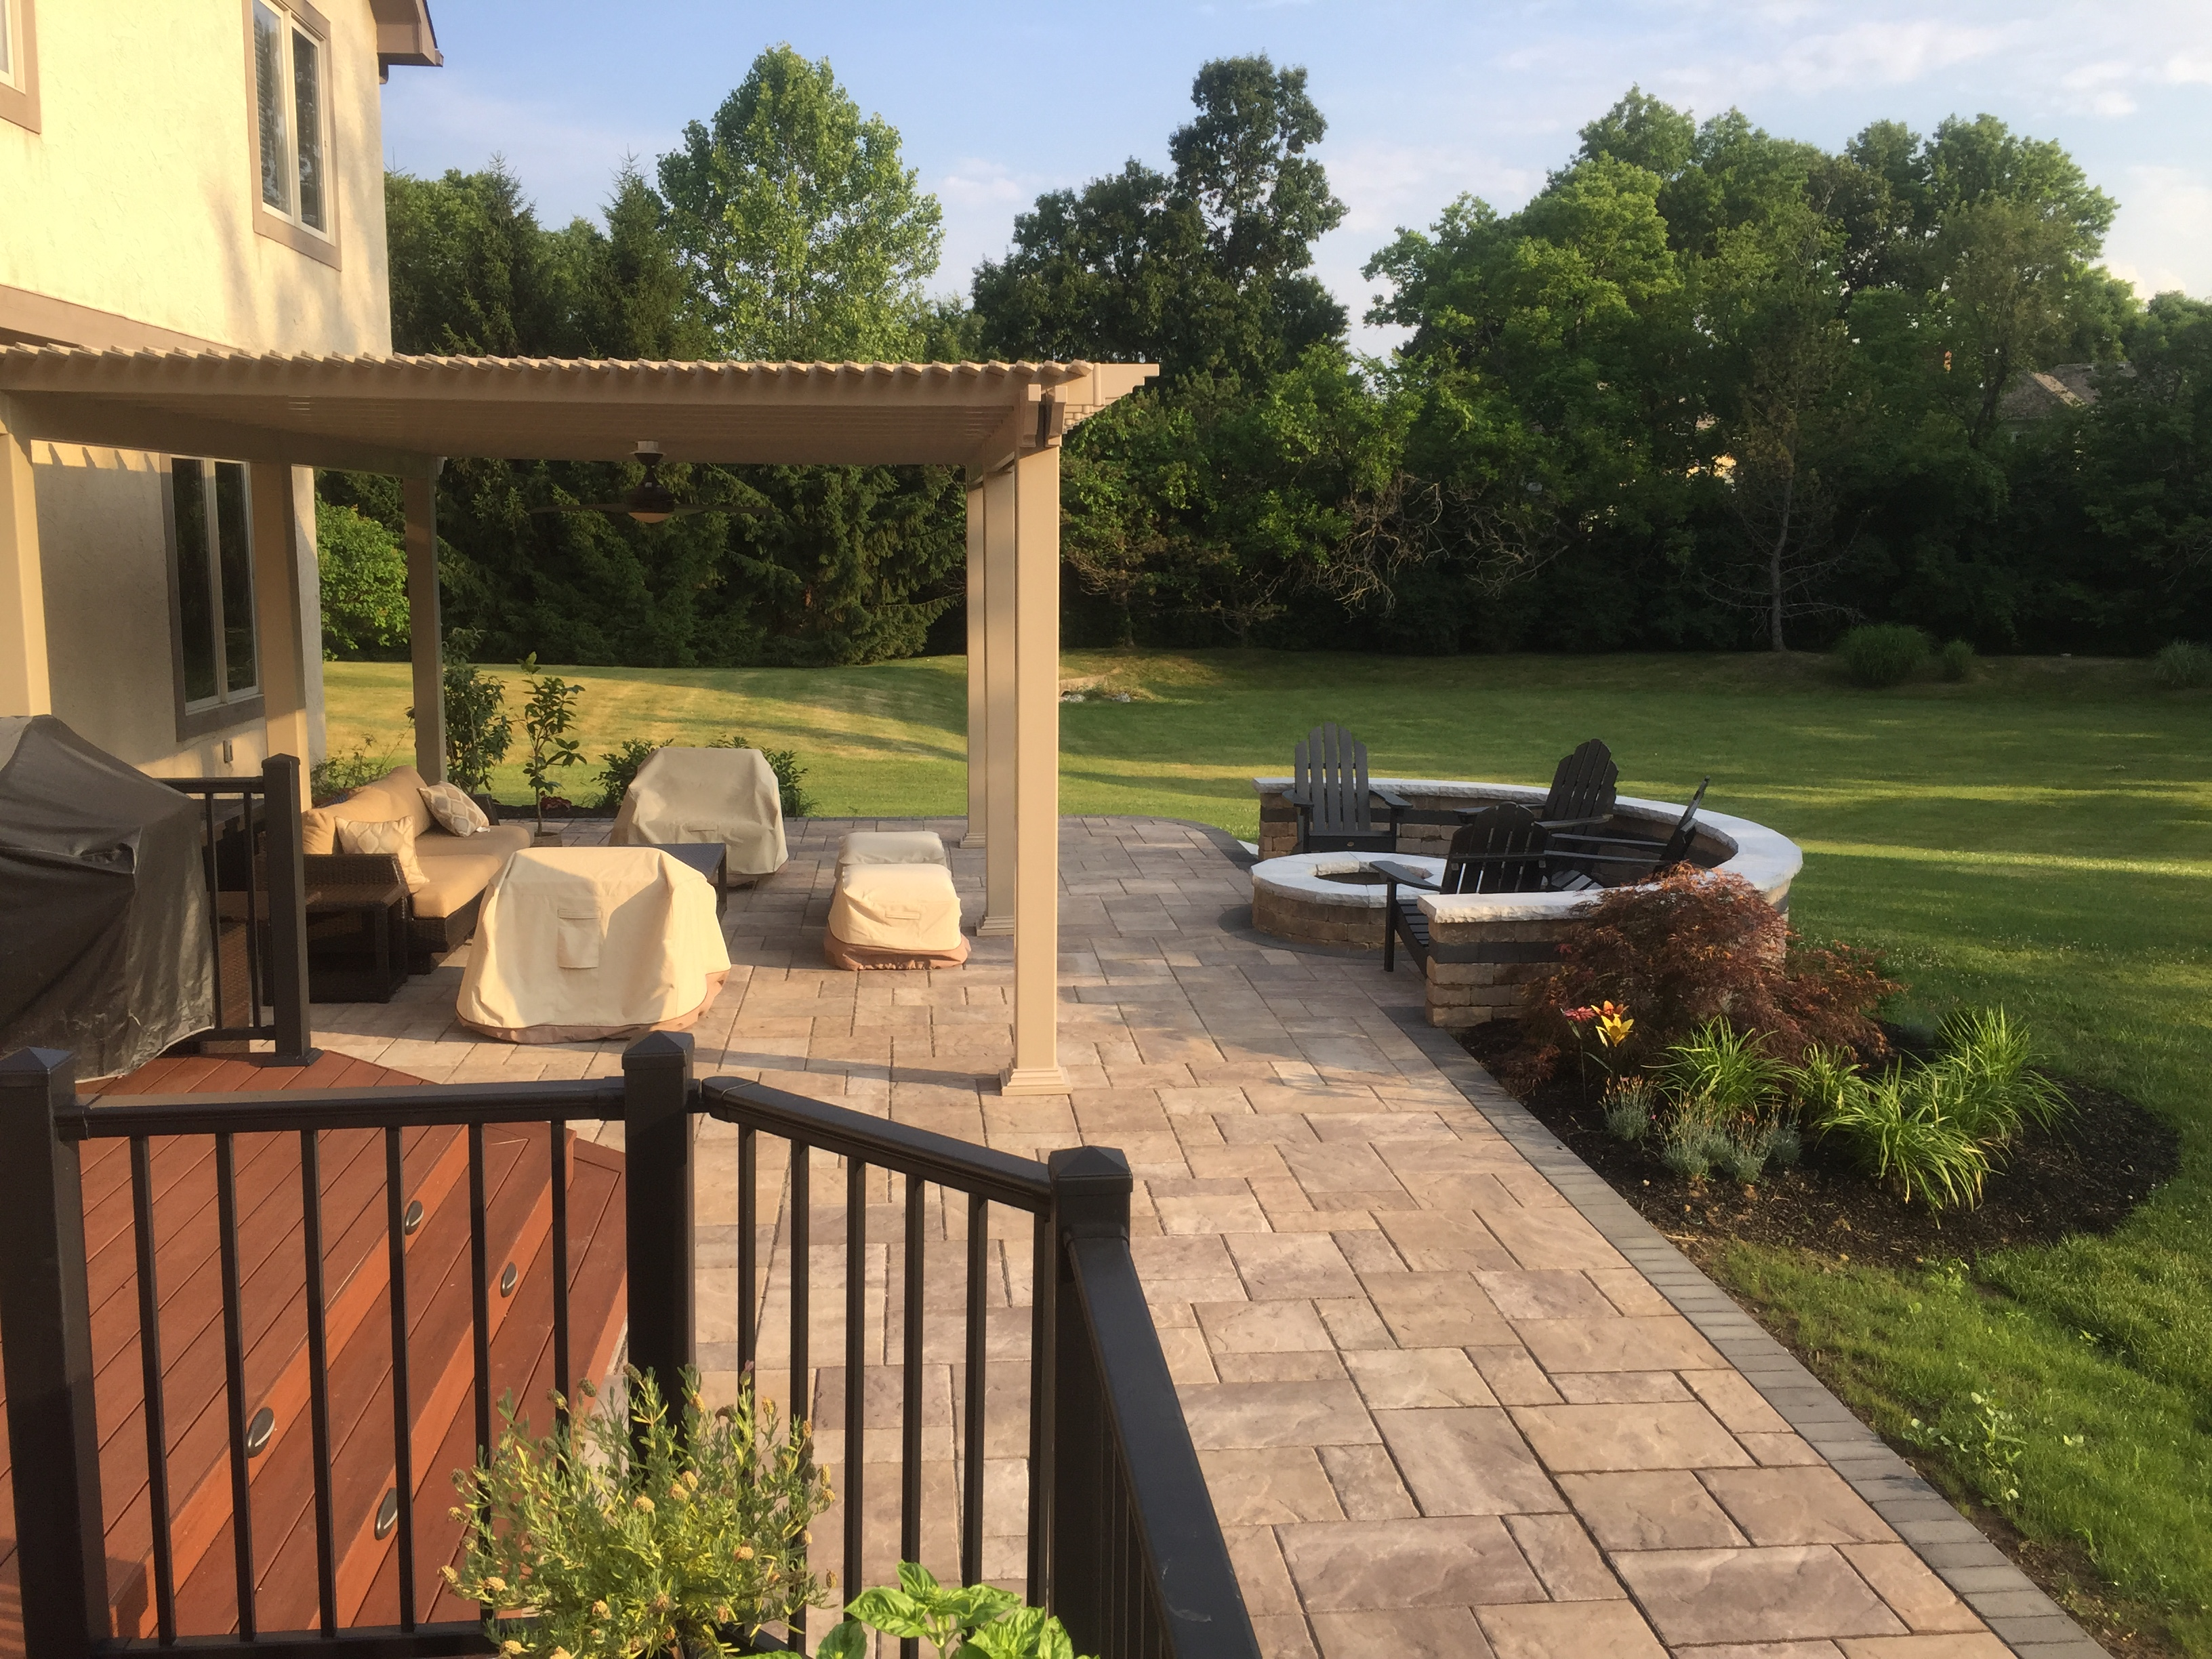 Patio meaning Low Cost New Albany Oh Paver Patios Columbus Decks Porches And Patios By Archadeck Of Columbus New Albany Oh Paver Patios Columbus Decks Porches And Patios By